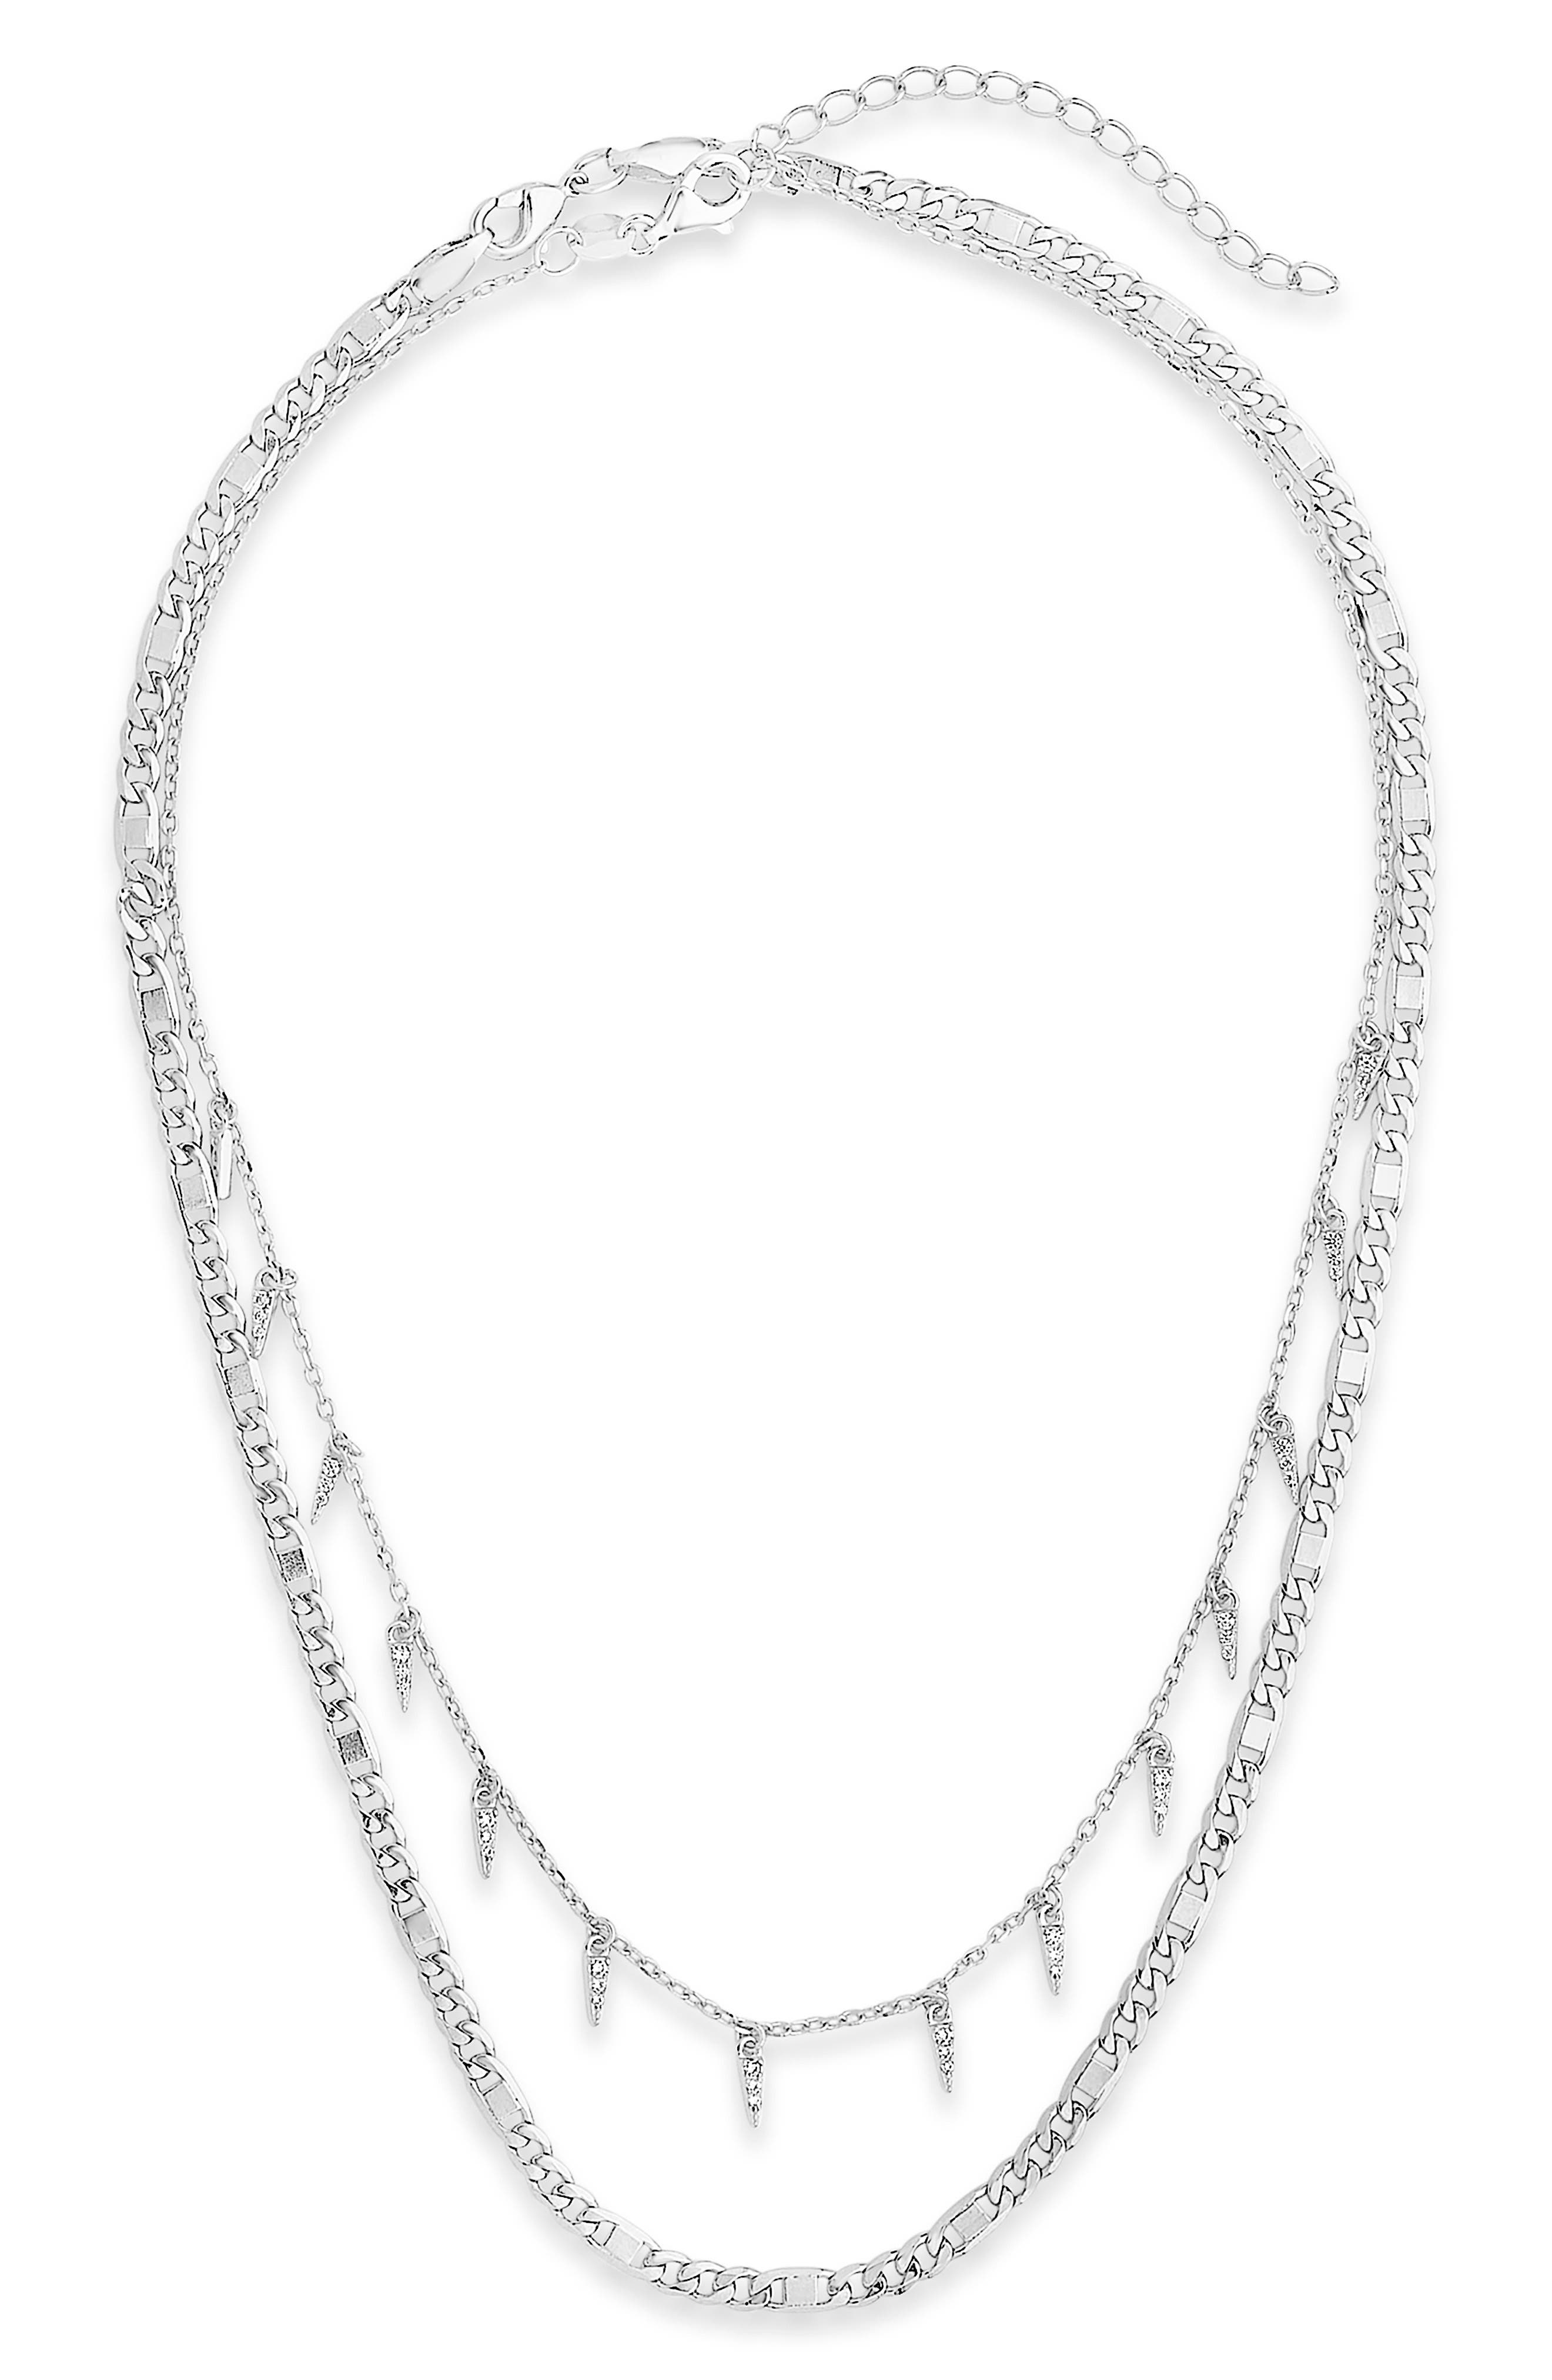 Nail the layered look in this two-strand necklace featuring simple figaro links and a shorter chain embellished with crystal-adorned pyramid pendants. Style Name: Sterling Forever Cubic Zirconia Layered Necklace. Style Number: 6173959. Available in stores.